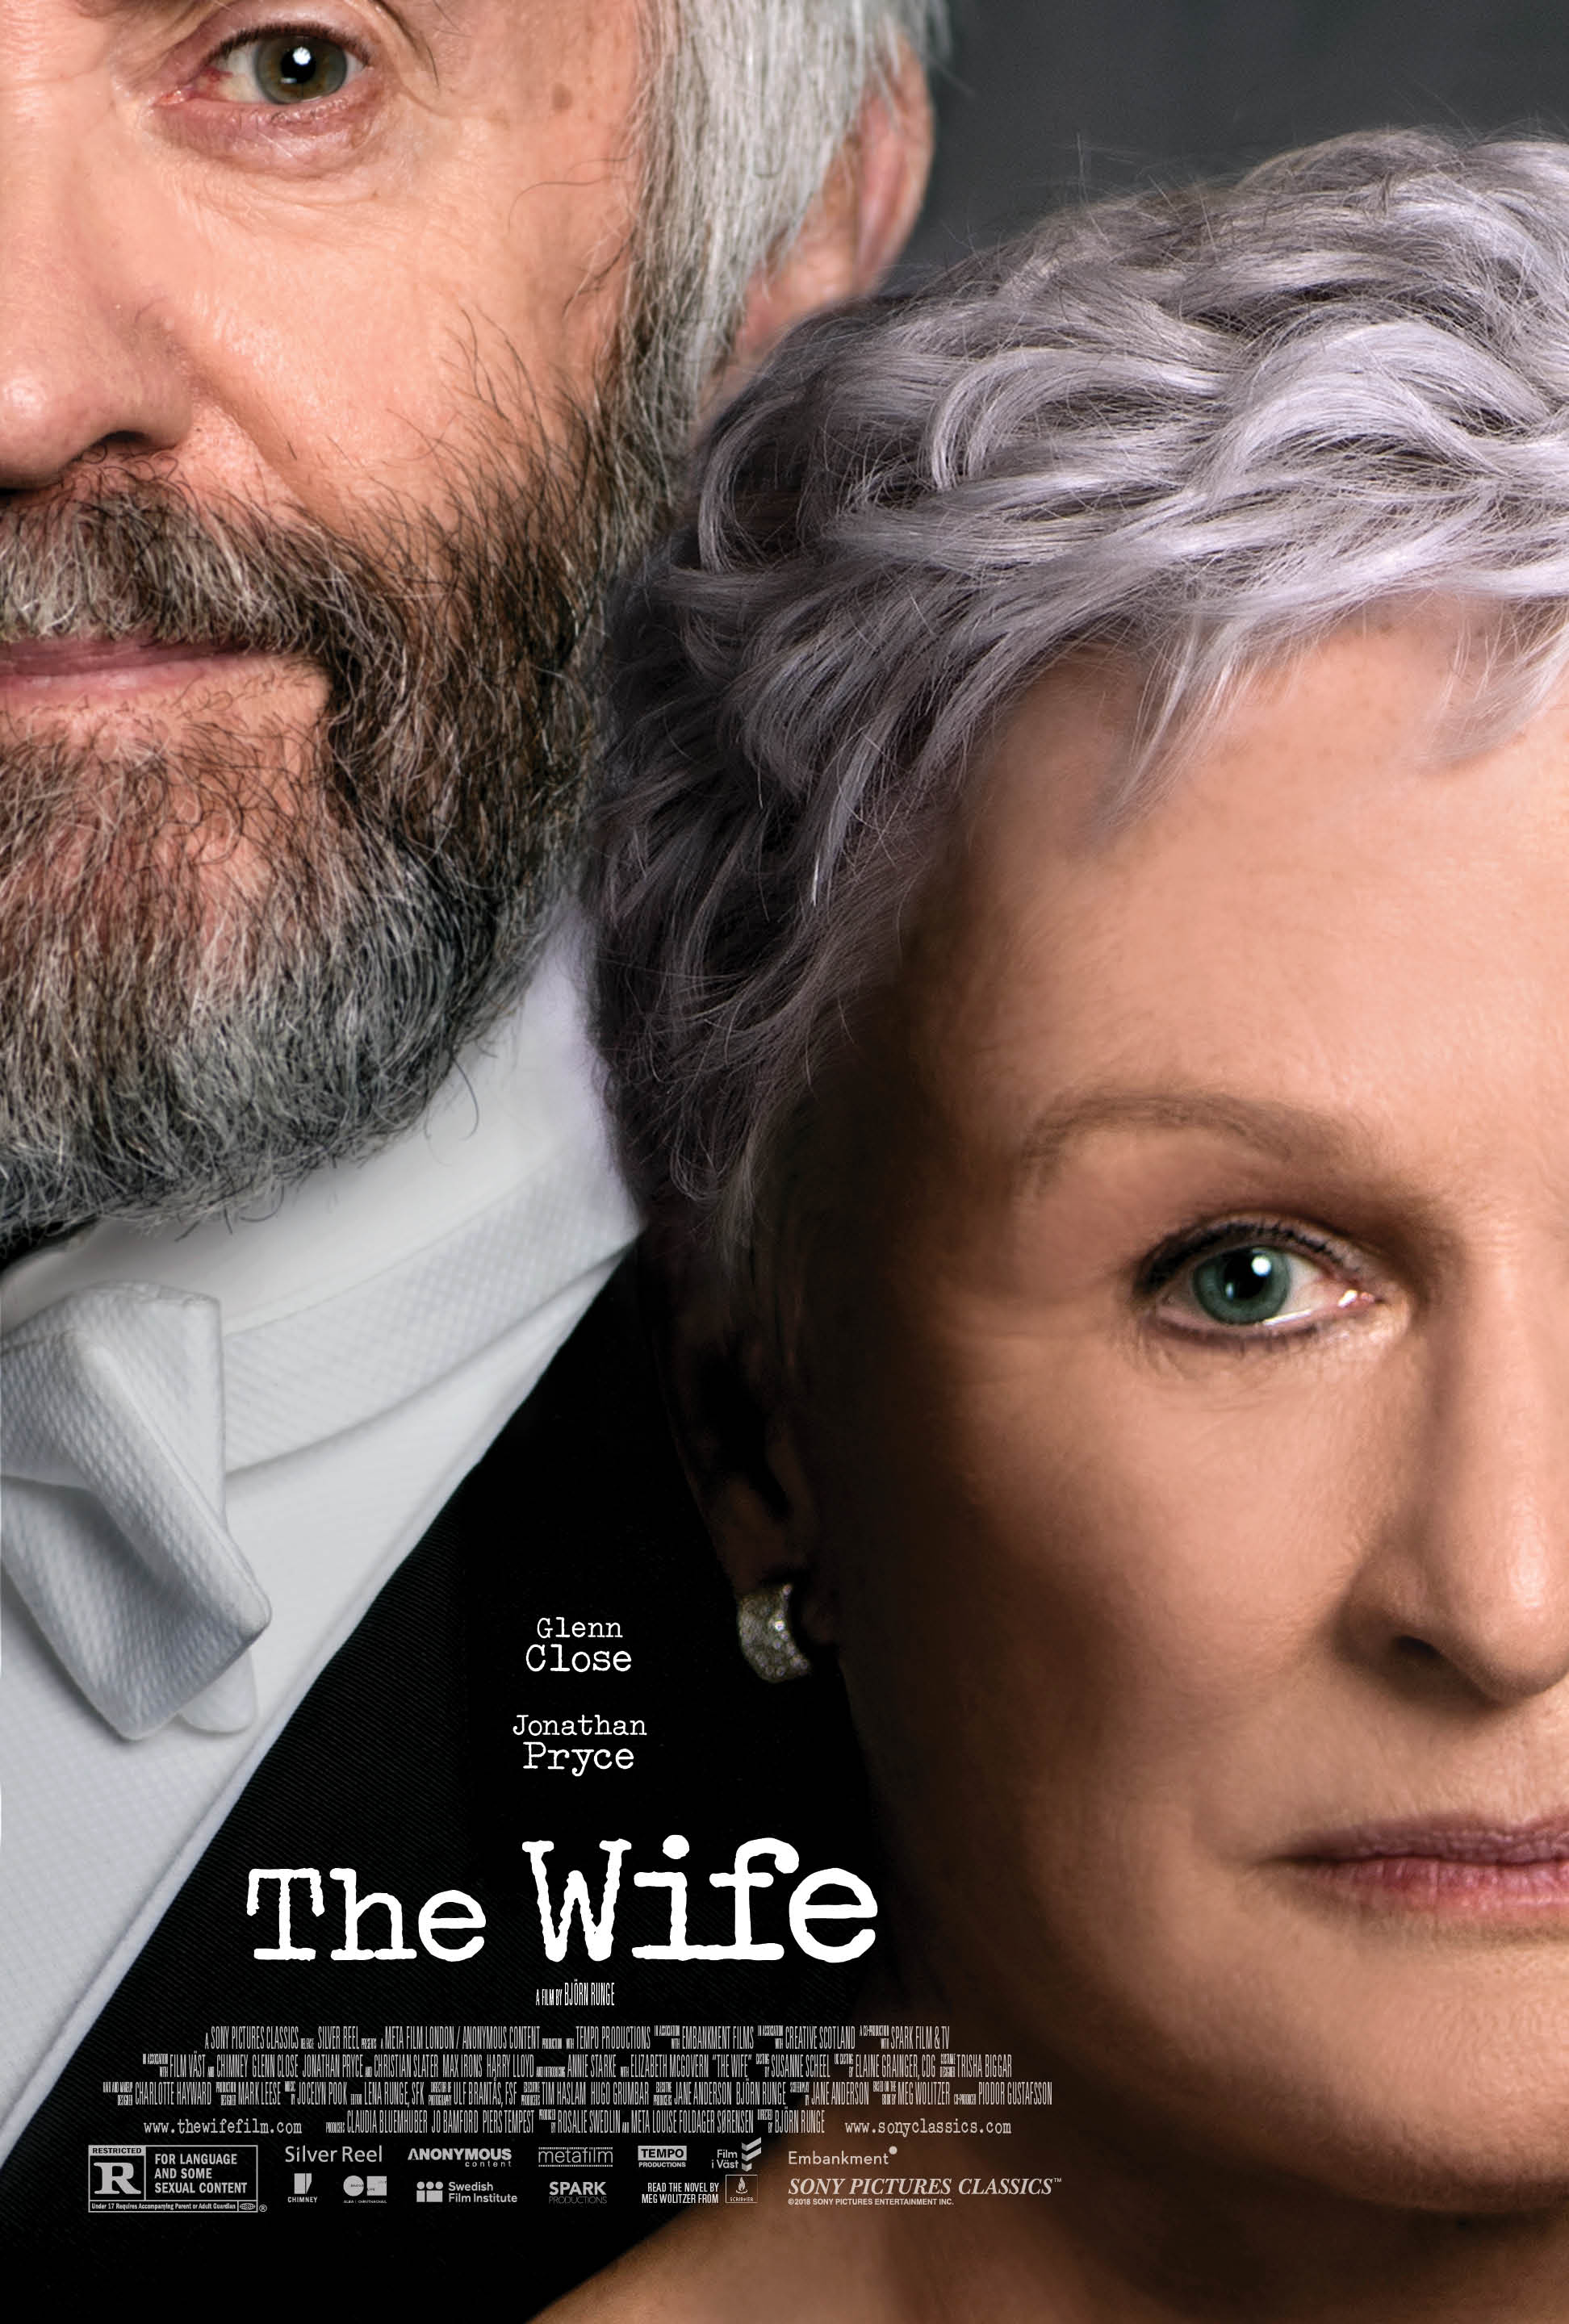 Bedroom Eyes Full Movie 2017 the wife' movie review: glenn close's spouse is mad as hell